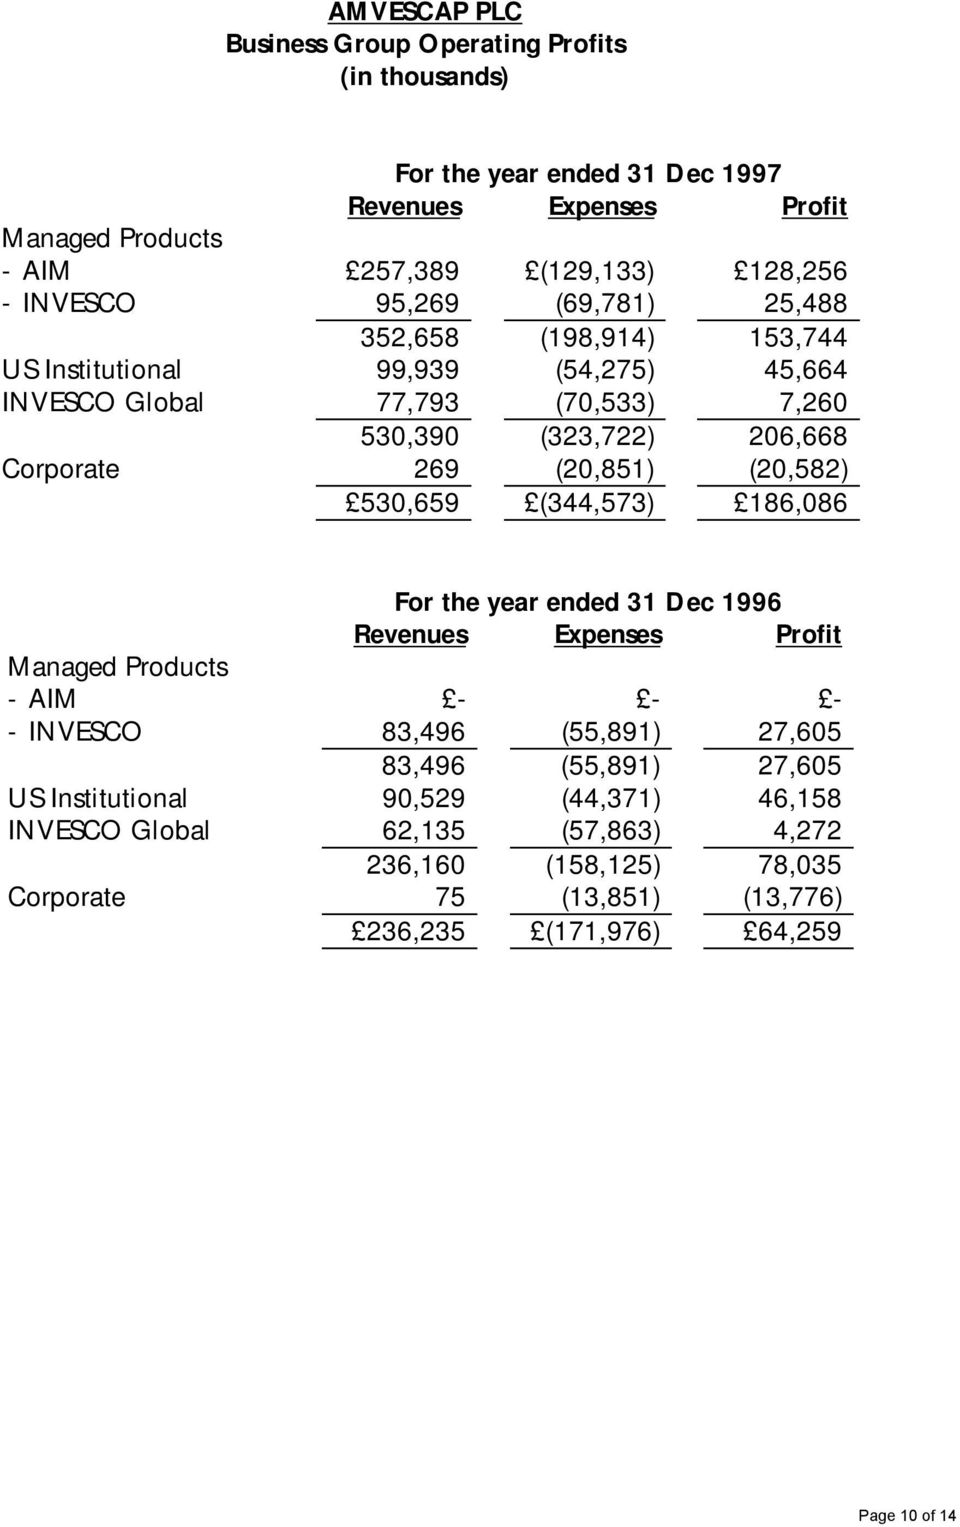 (20,851) (20,582) 530,659 (344,573) 186,086 For the year ended 1996 Revenues Expenses Profit Managed Products - AIM - - - - INVESCO 83,496 (55,891) 27,605 83,496 (55,891)